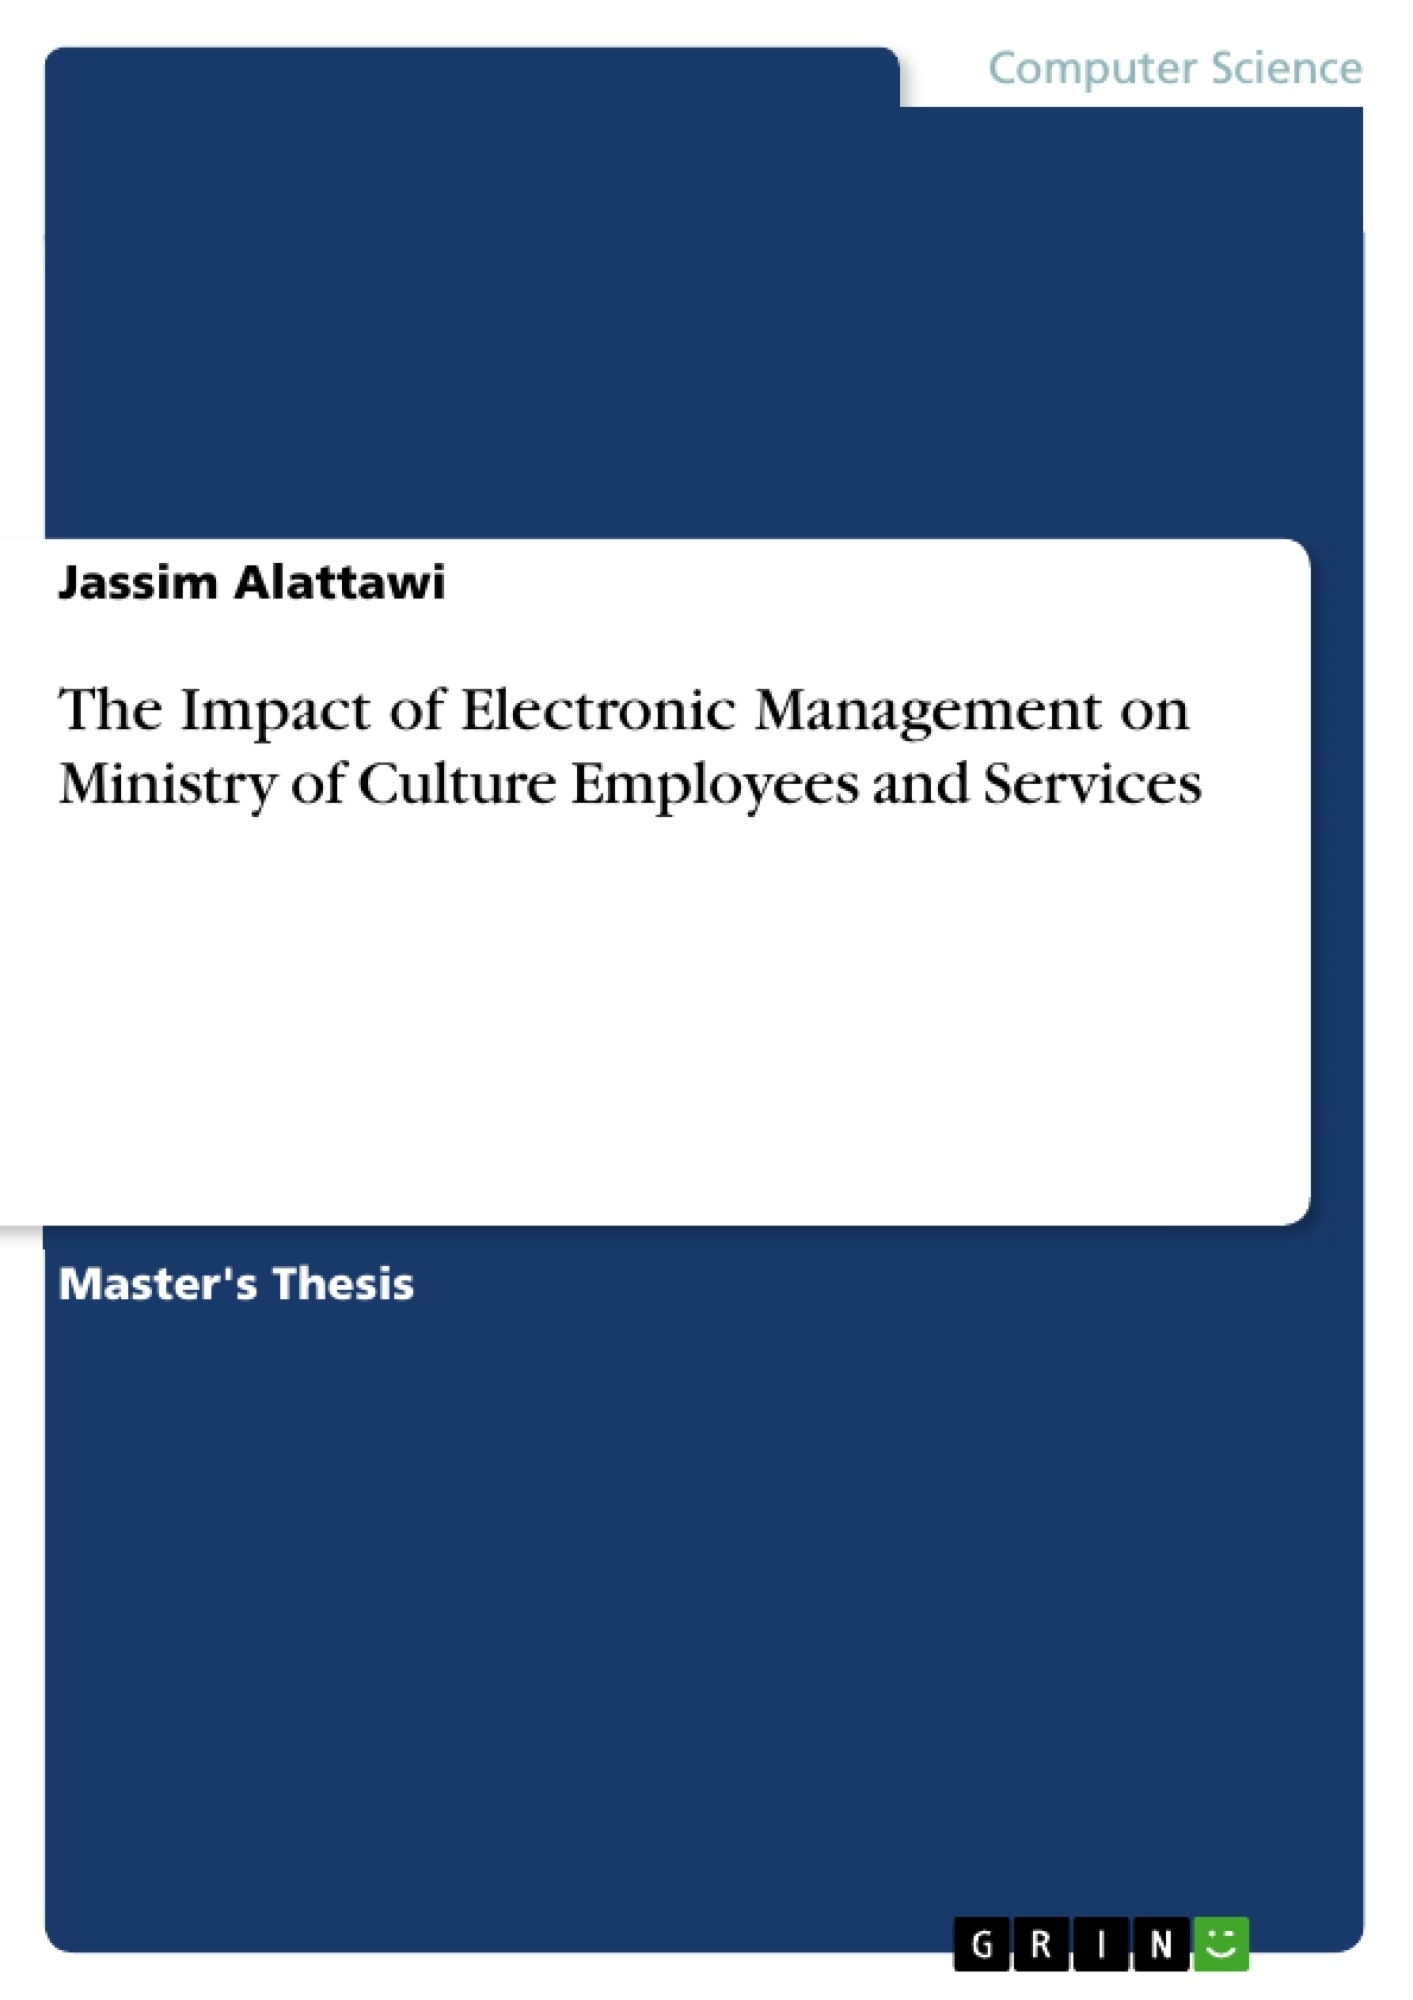 Title: The Impact of Electronic Management on Ministry of Culture Employees and Services